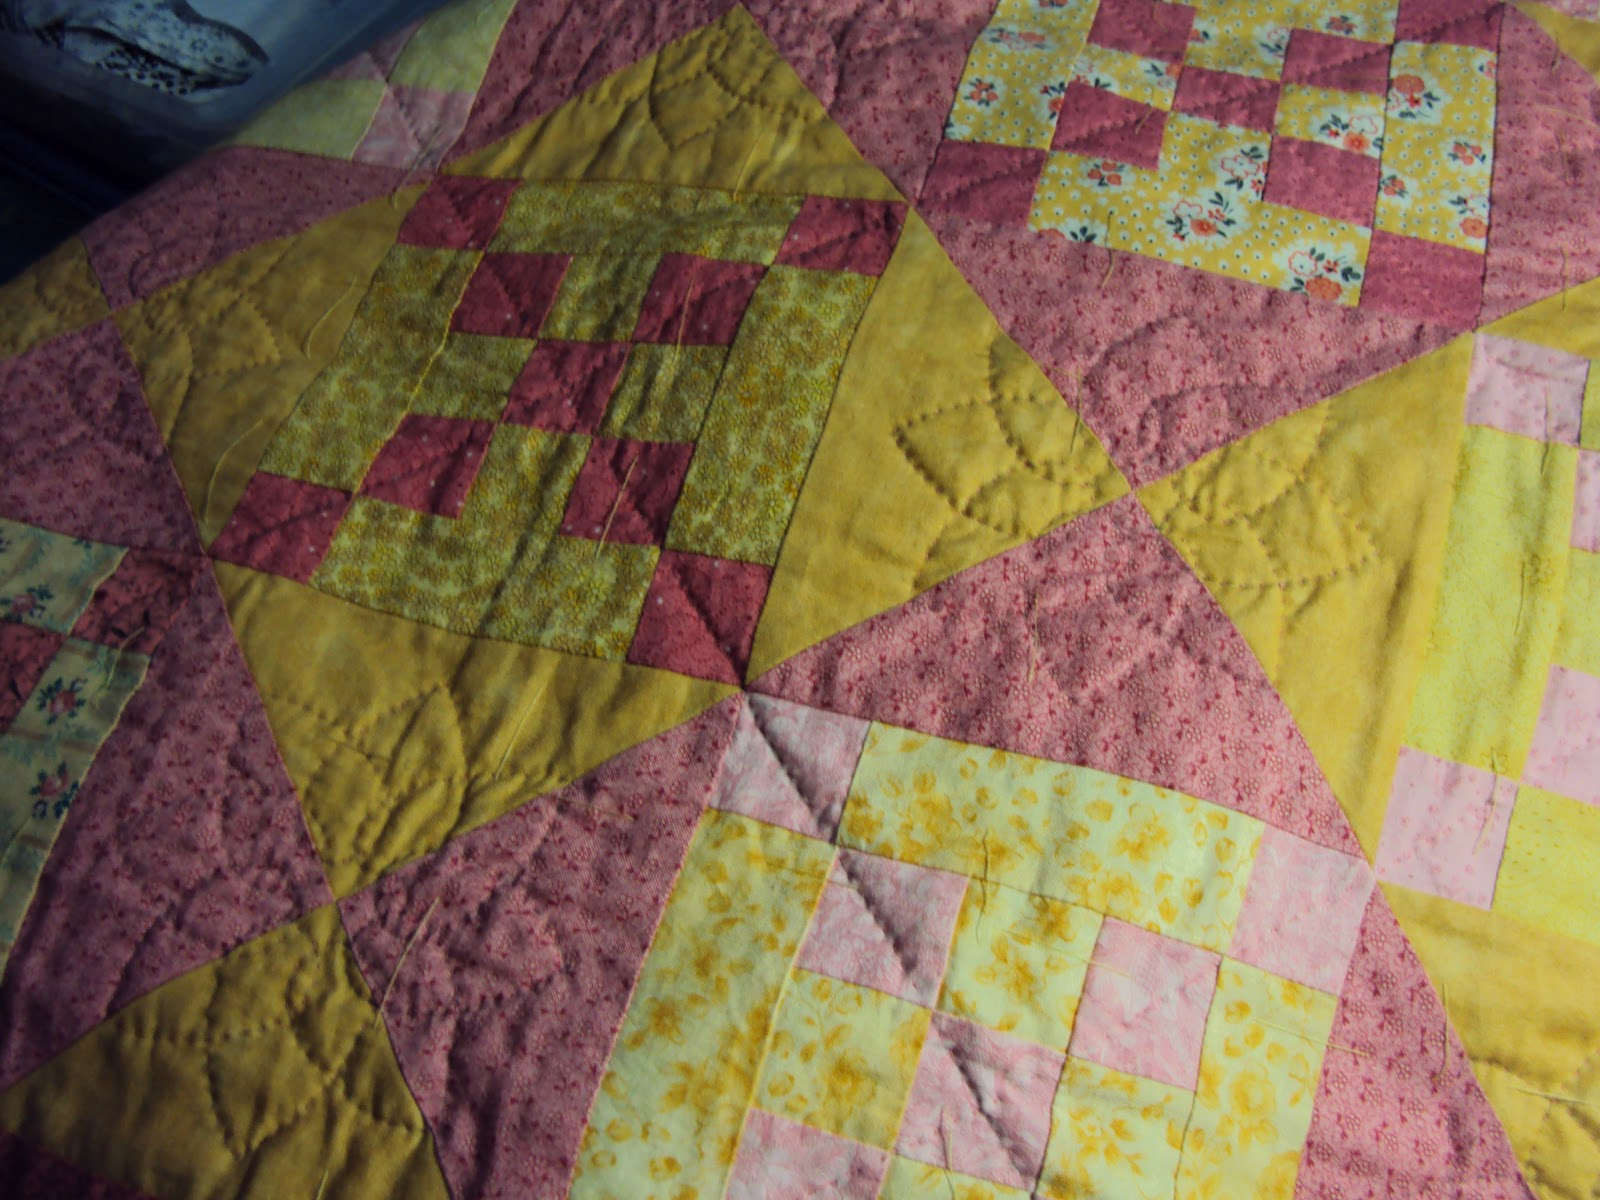 Hand Quilting Without A Hoop.Hand Quilting Without A Hoop ... : hand quilting without a hoop - Adamdwight.com